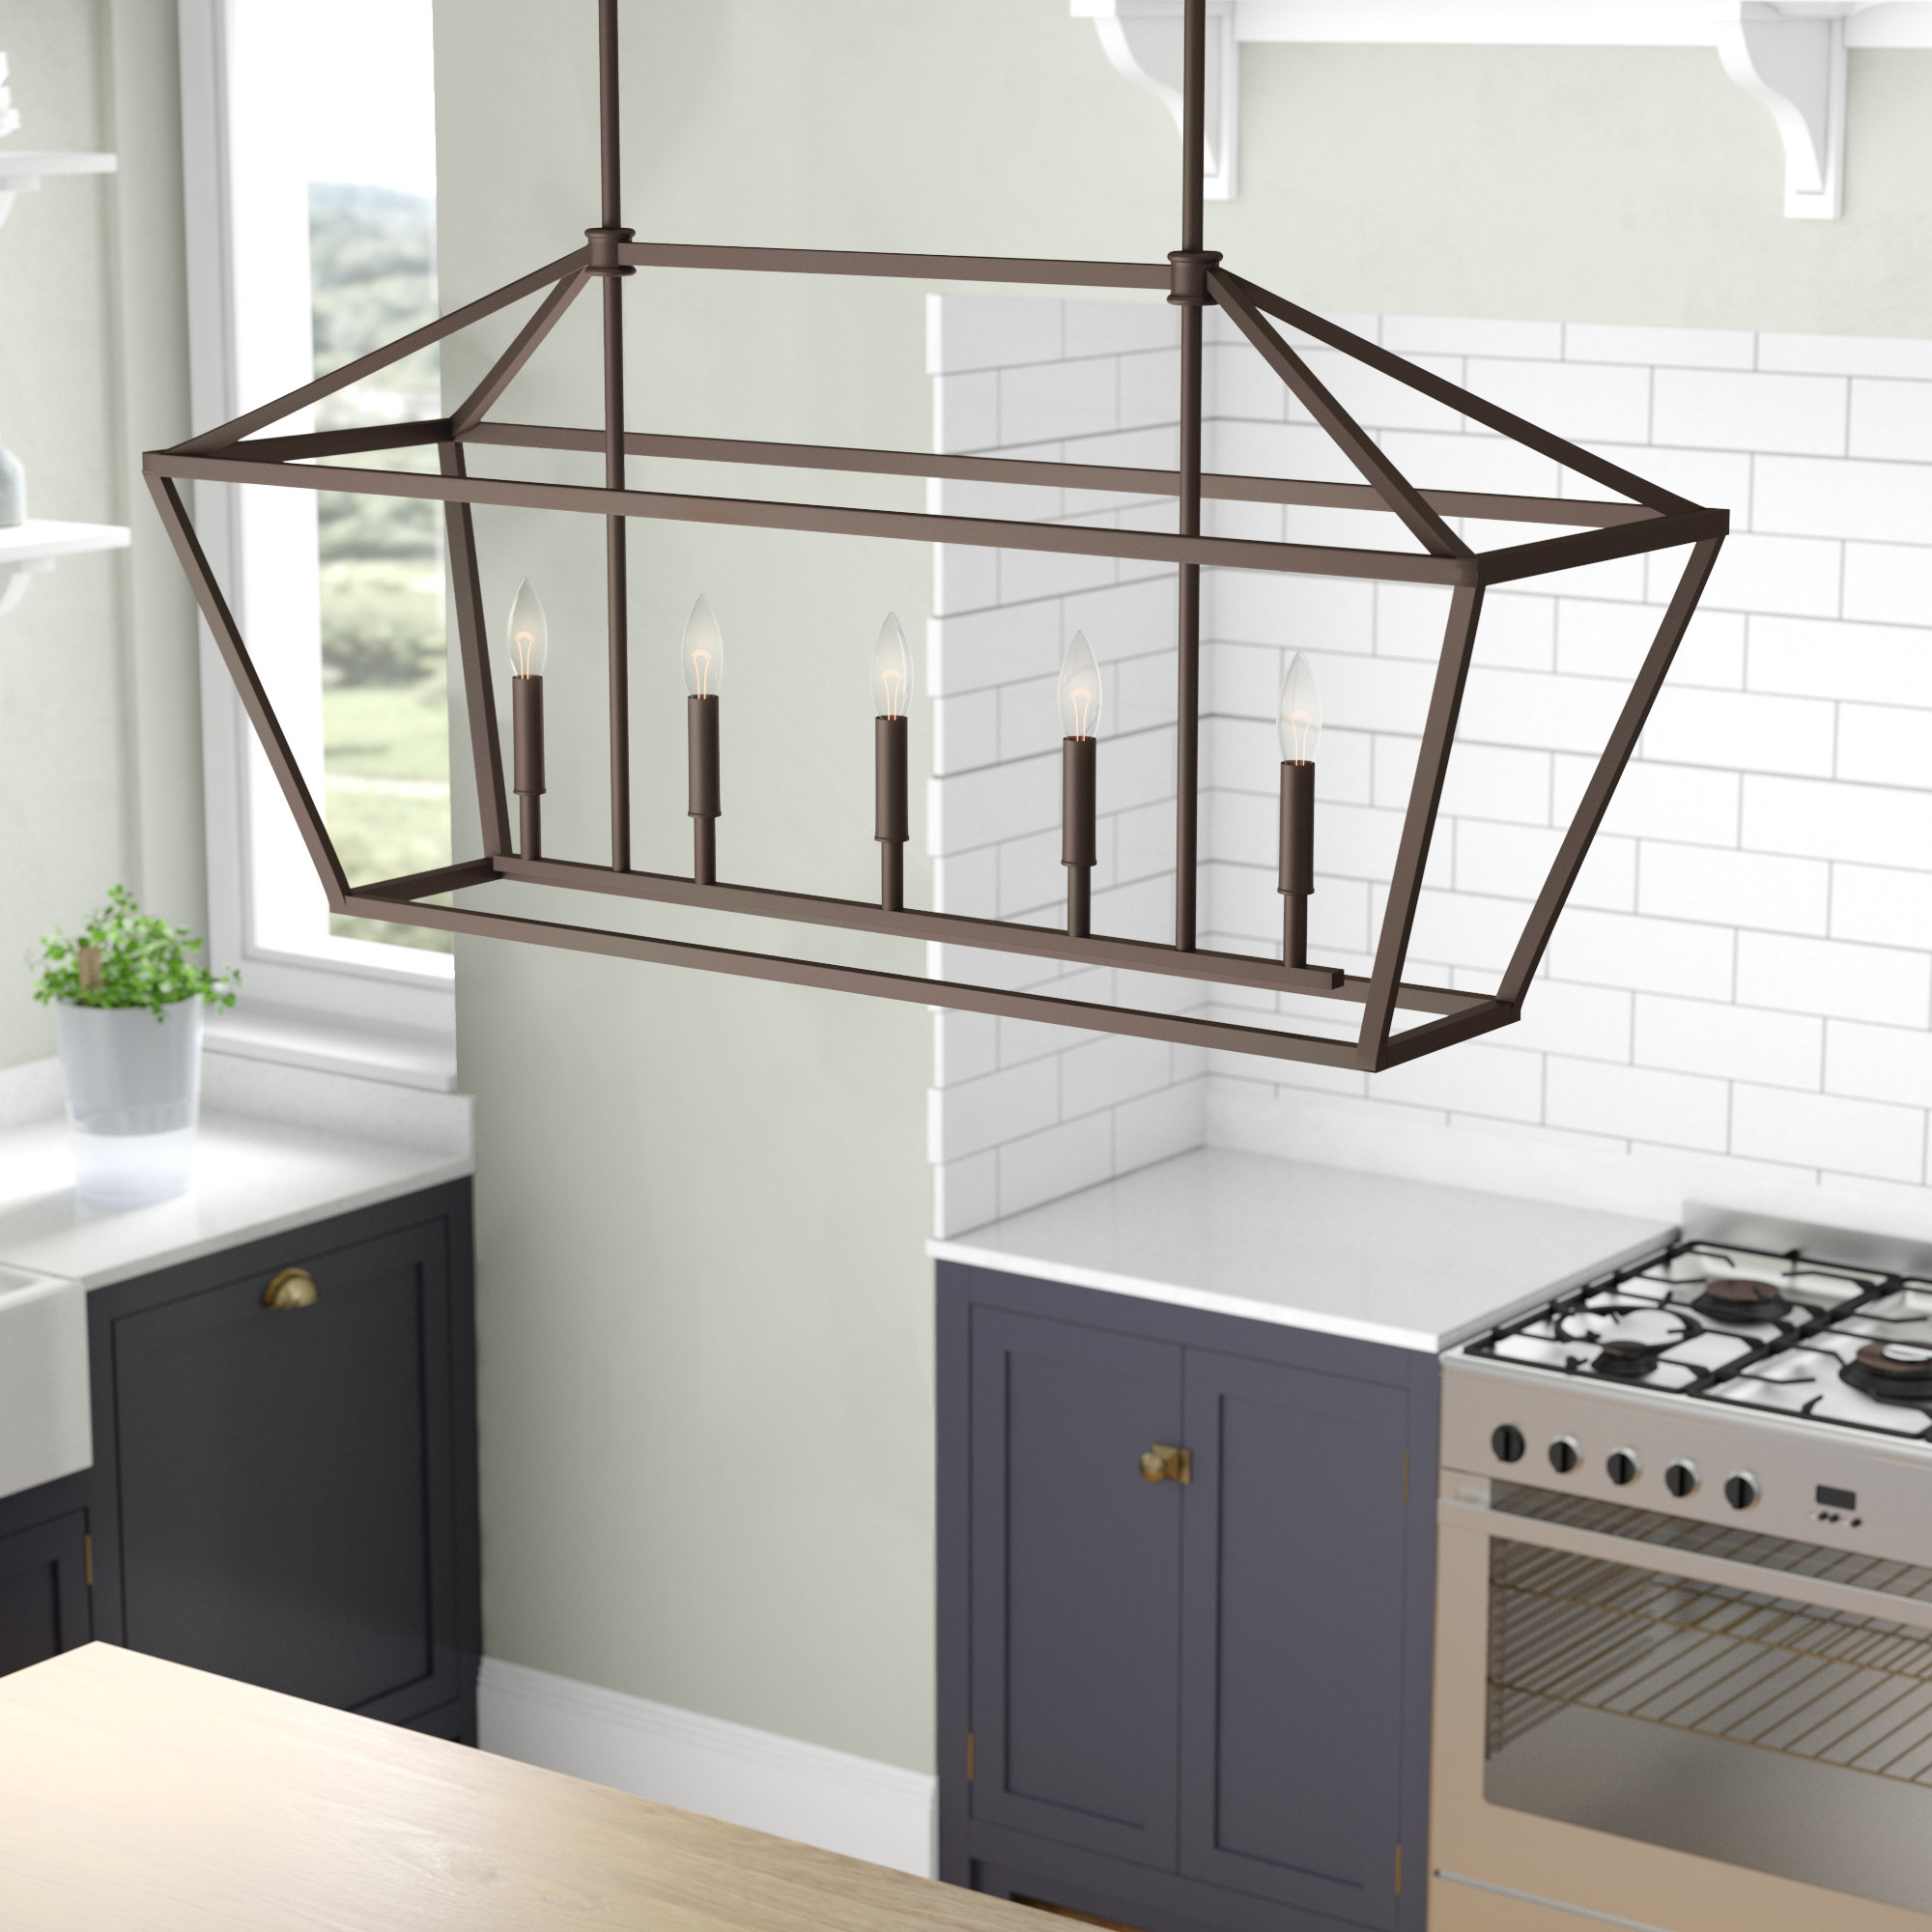 Preferred Laurel Foundry Modern Farmhouse Freemont 5 Light Kitchen Island Linear  Pendant Pertaining To Freemont 5 Light Kitchen Island Linear Chandeliers (View 5 of 25)